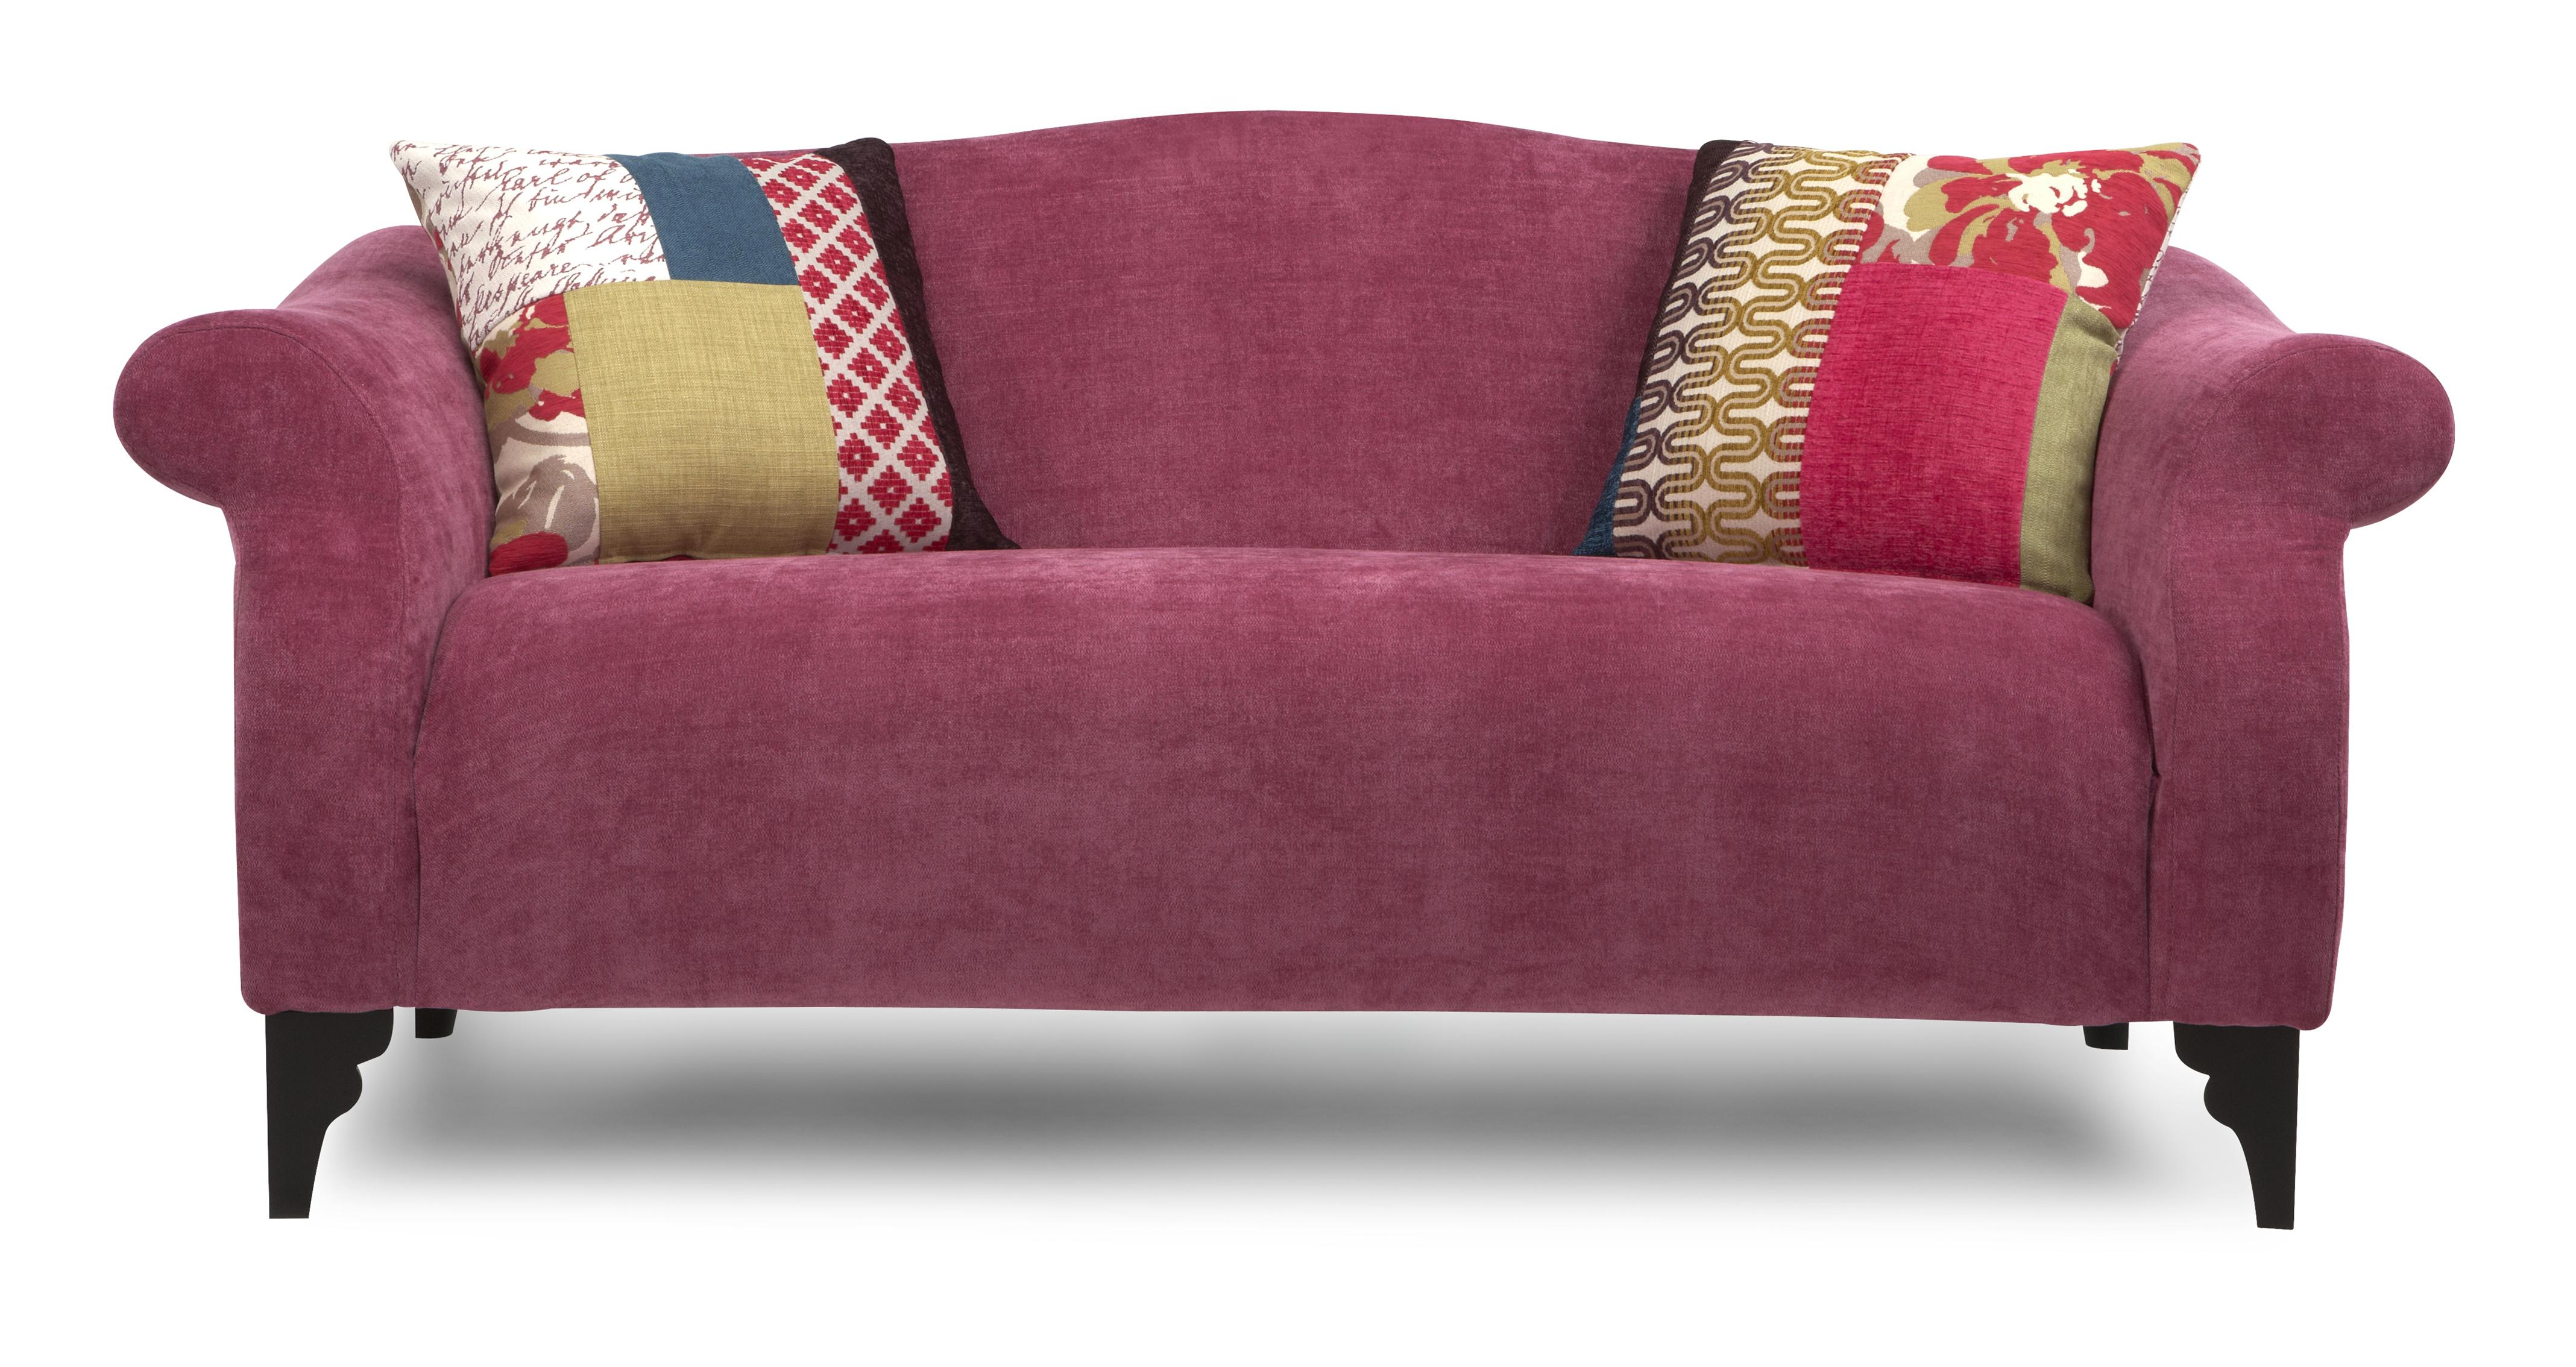 pink sofa browse uk outlet stores dfs brokeasshome